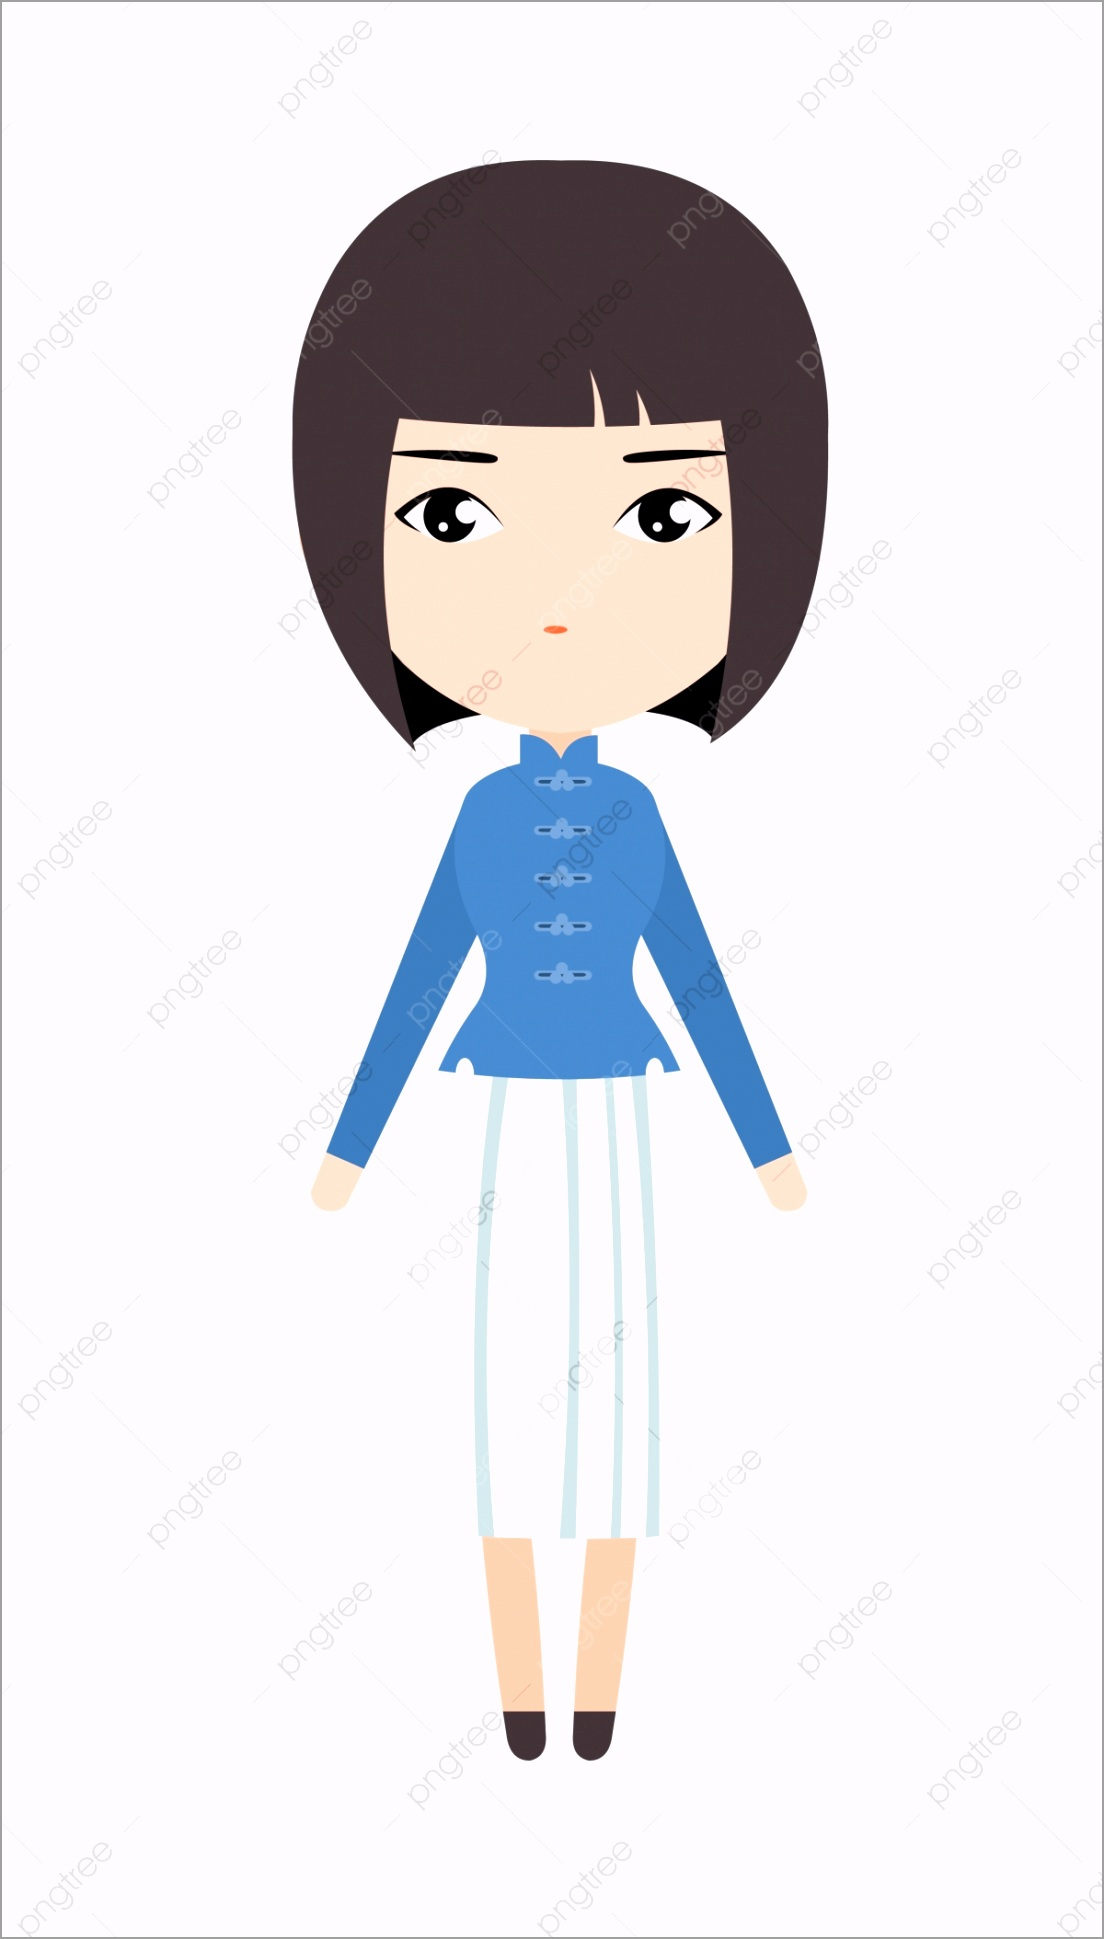 pngtree mg flash animation illustration character png image iftwy